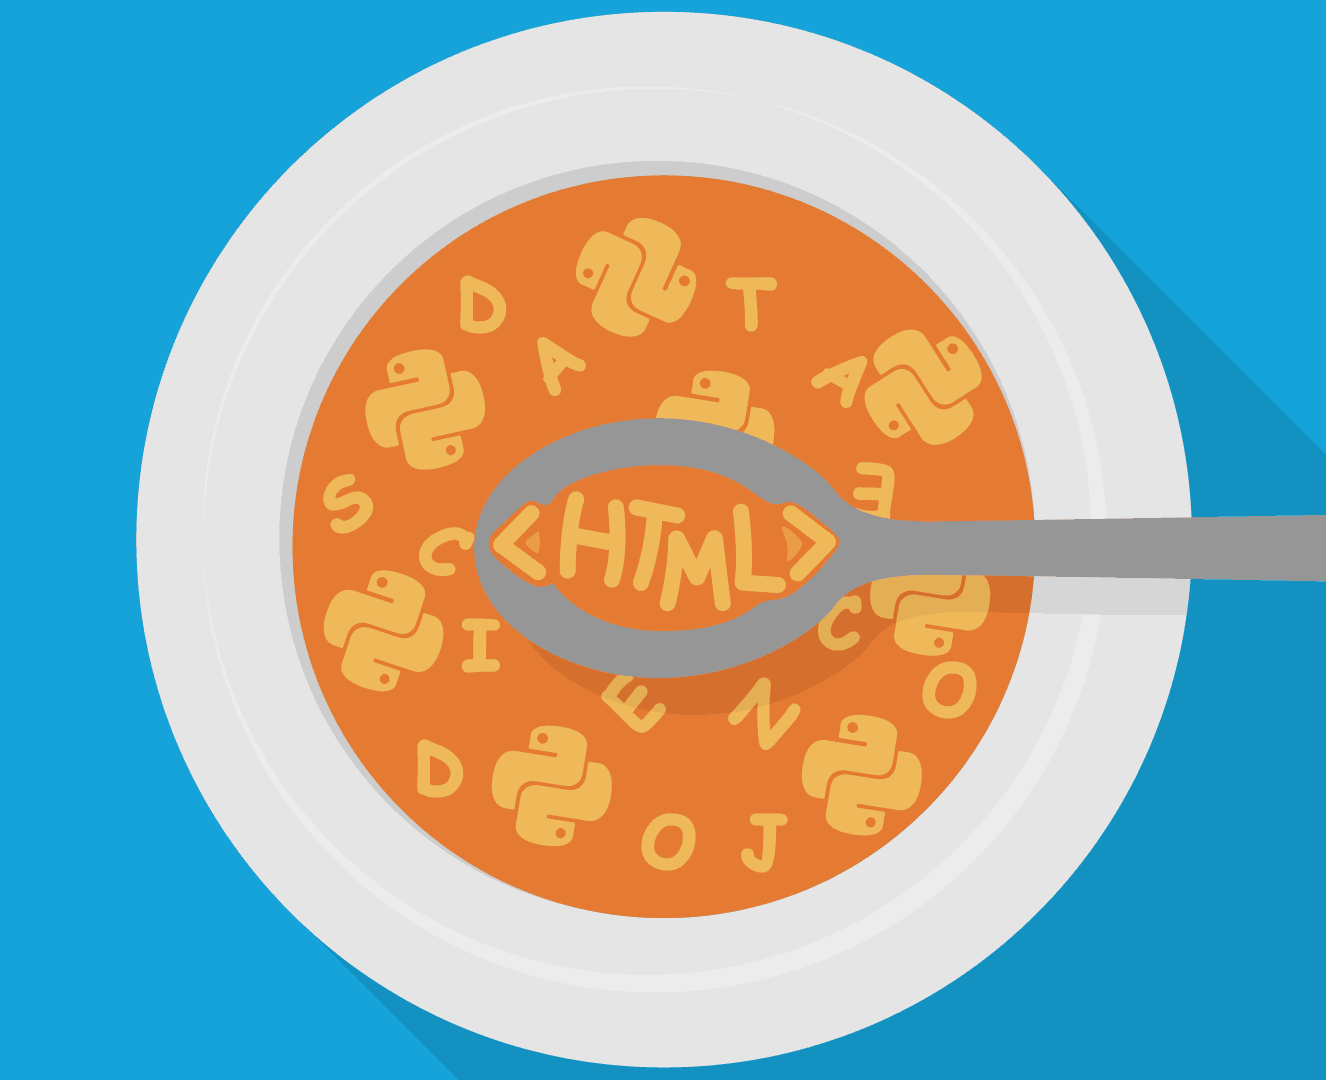 How to learn web scraping